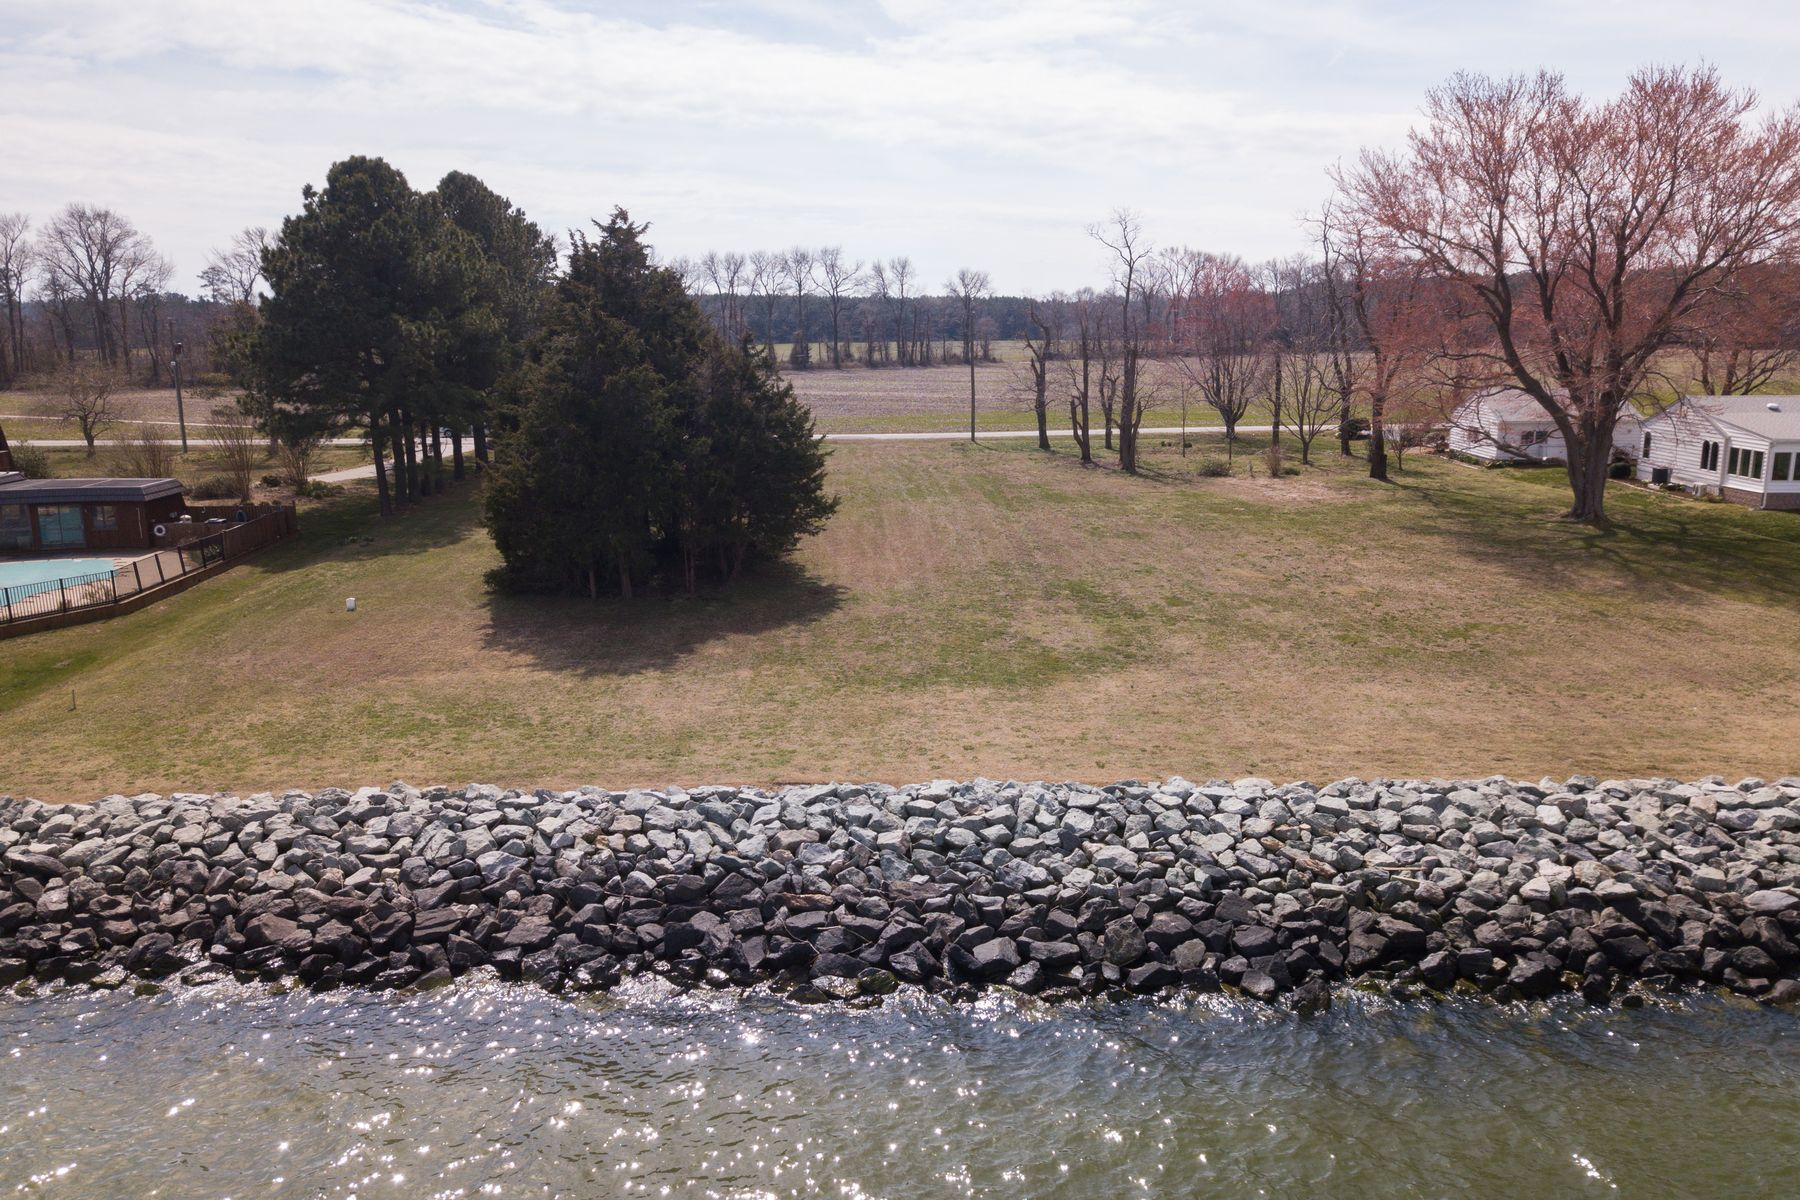 Land for Sale at Upper Sandy Point Lots 15 and 16 0 Spences Point Road, Lots 15 and 16 Kinsale, Virginia 22488 United States